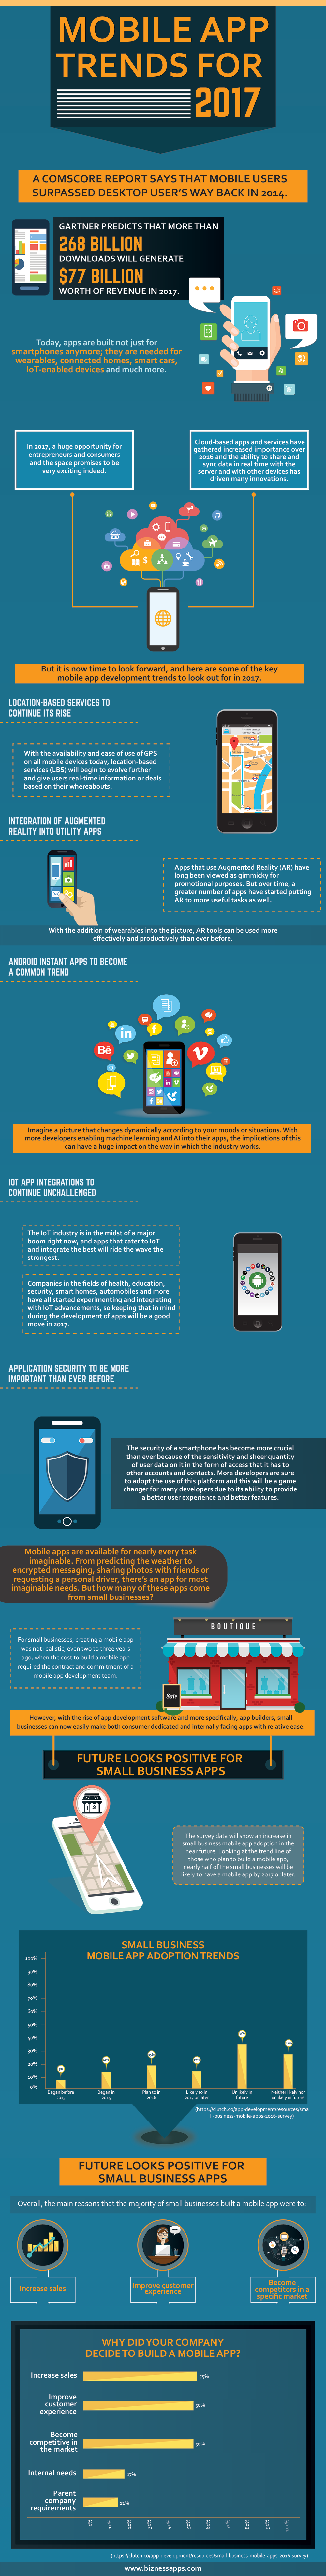 The latest mobile app trends for 2017 shows that the amount of small businesses with mobile apps is expected to increase this year.